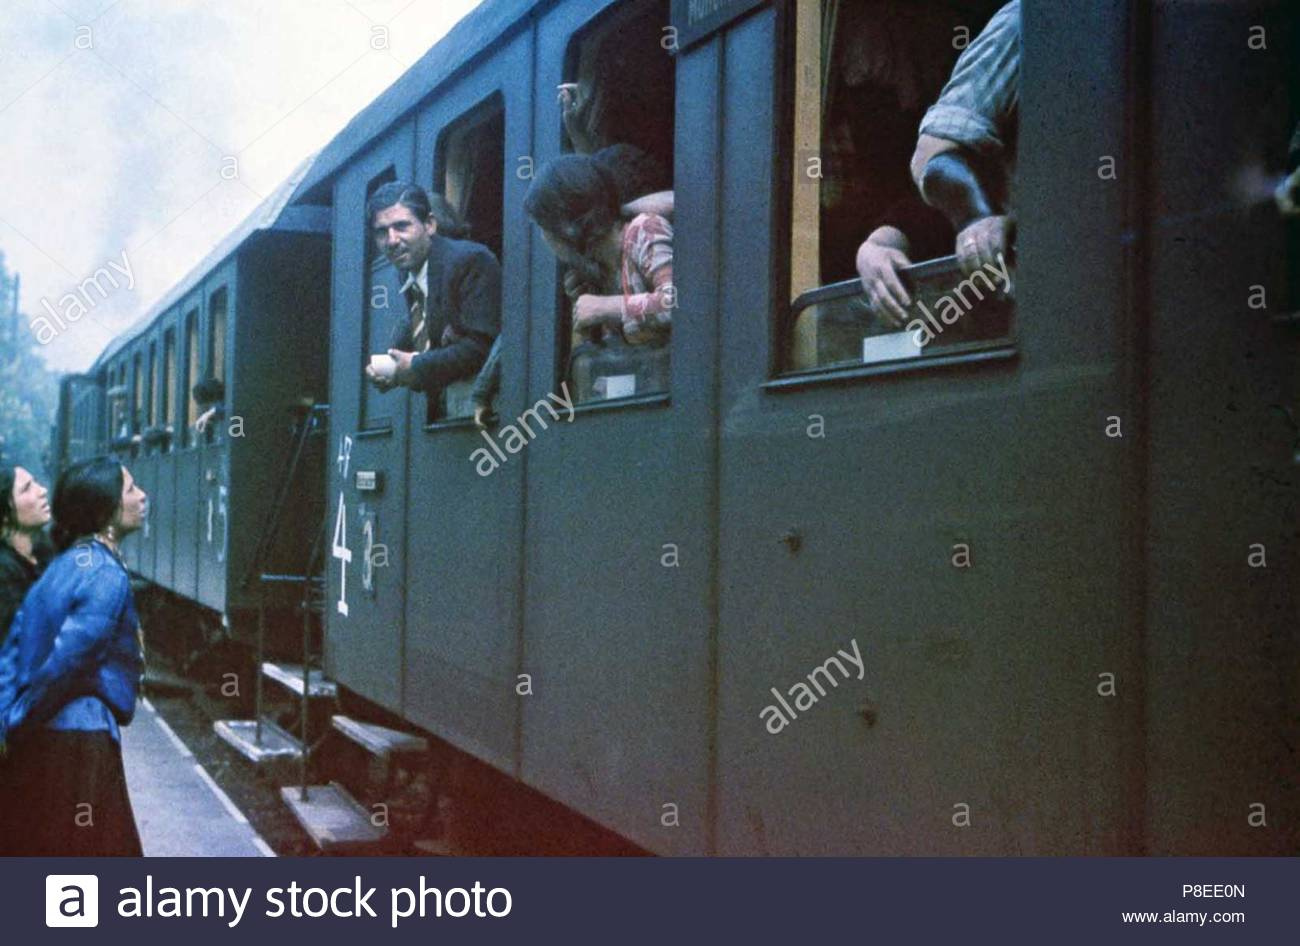 Deportation of the Roma people from Nazi Germany, 1938-1940 - Stock Image